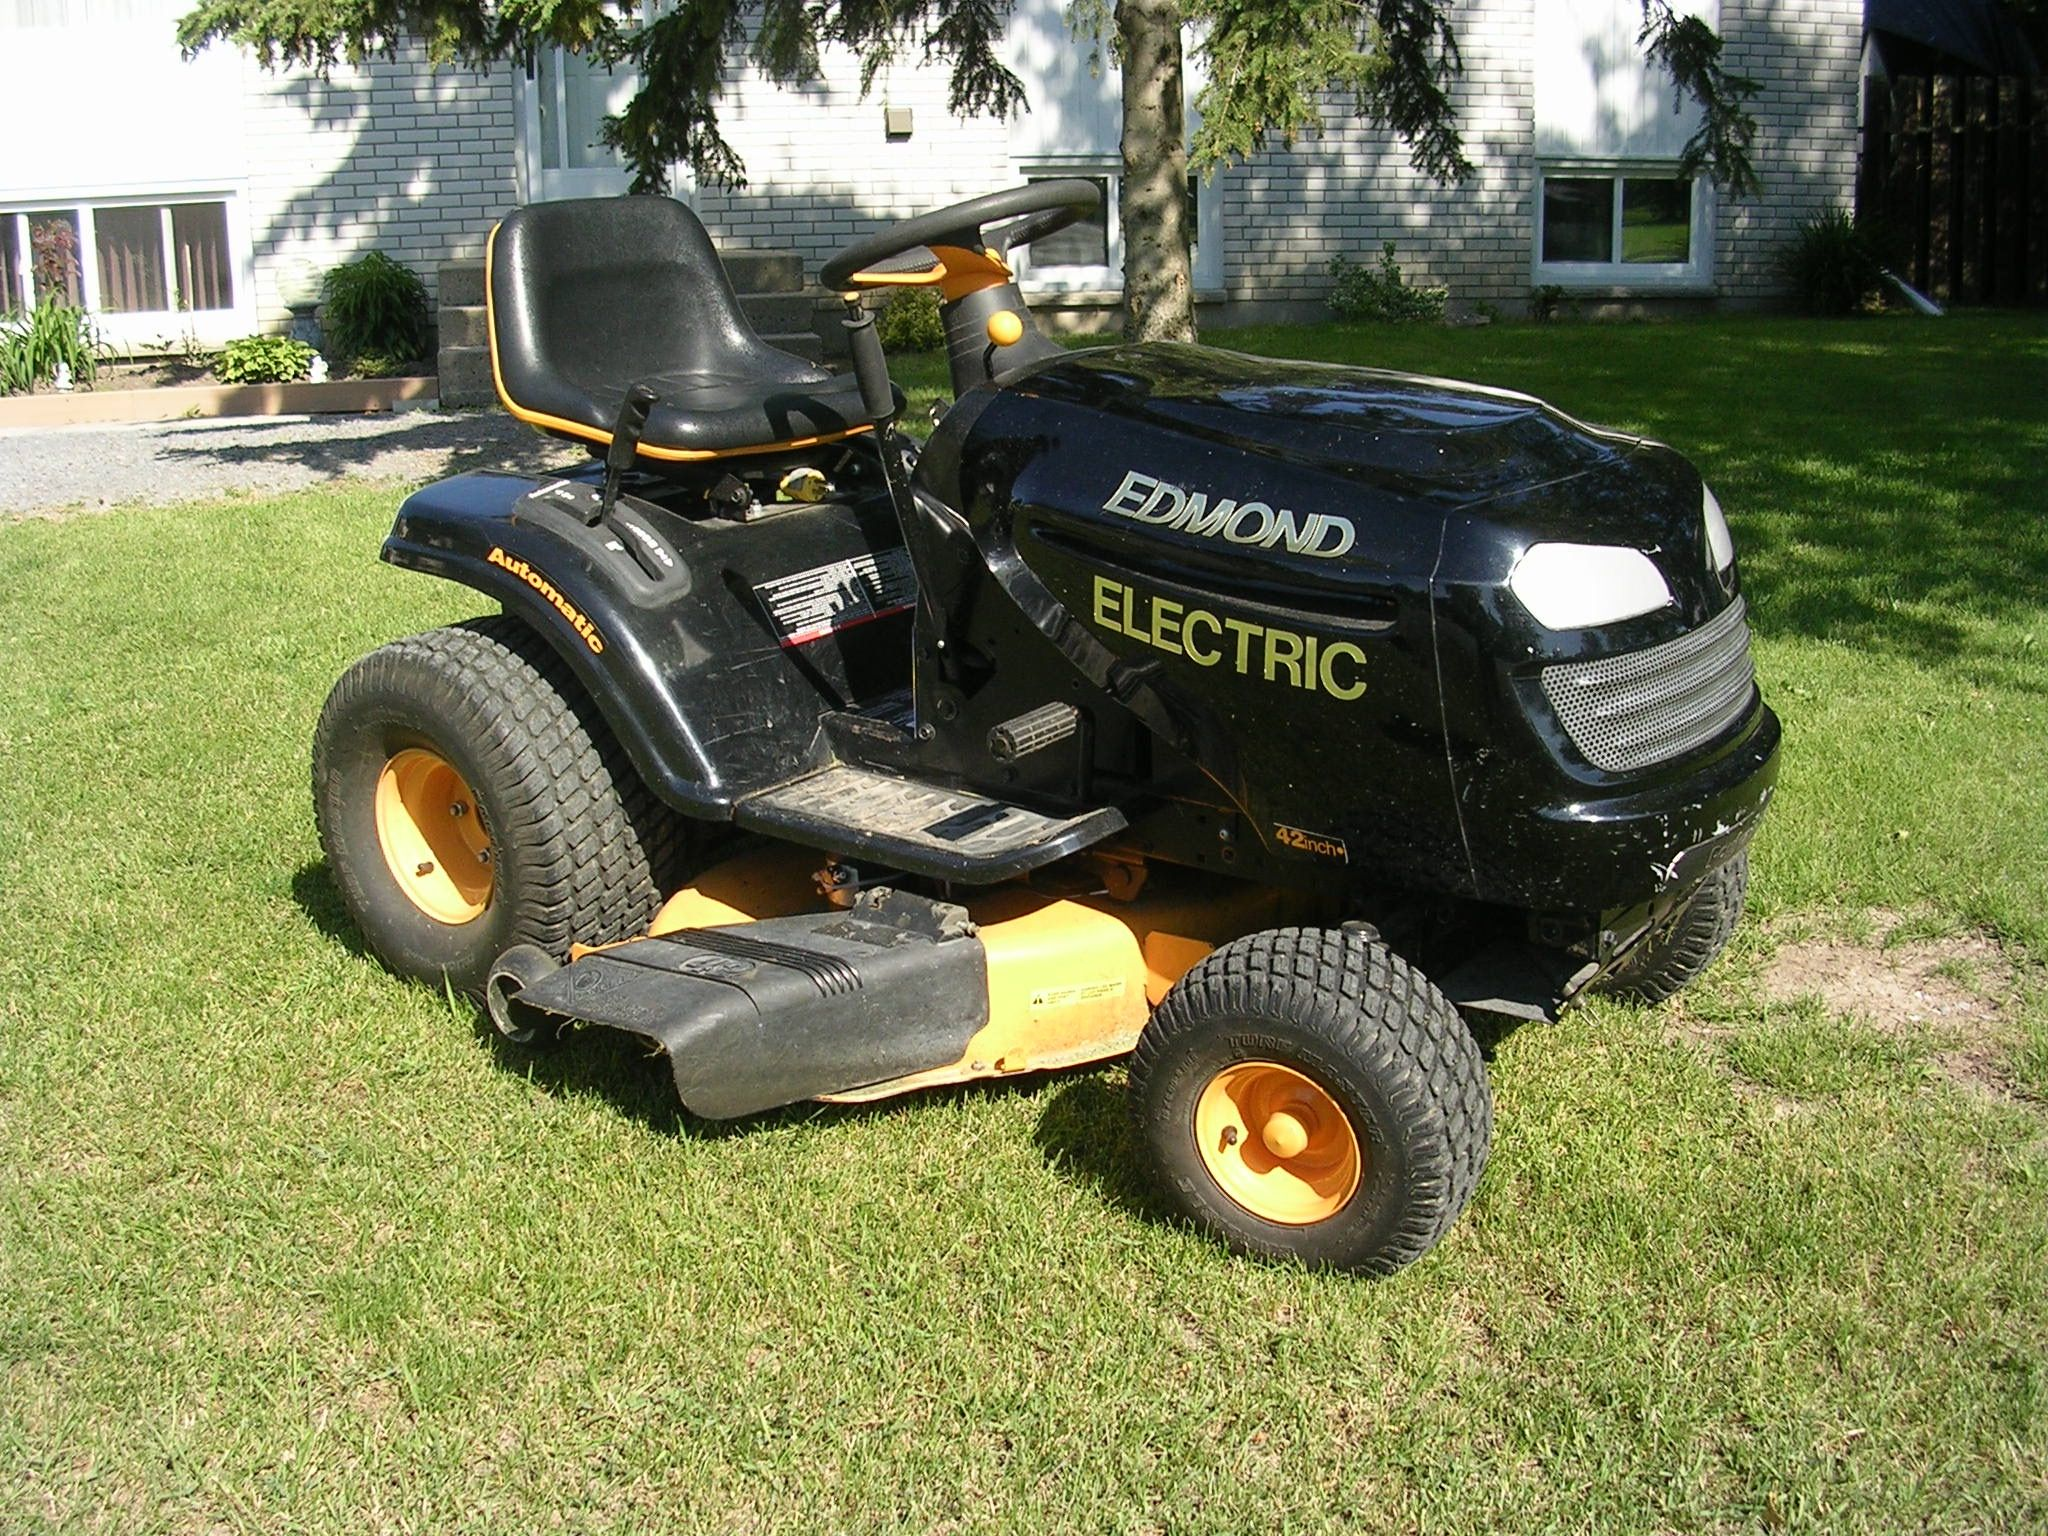 Diy Electric Garden Tractor Convert Your Old Gas Tractor To Electric Plans And Instructions Electricity Lawn Mower Lawn Tractor